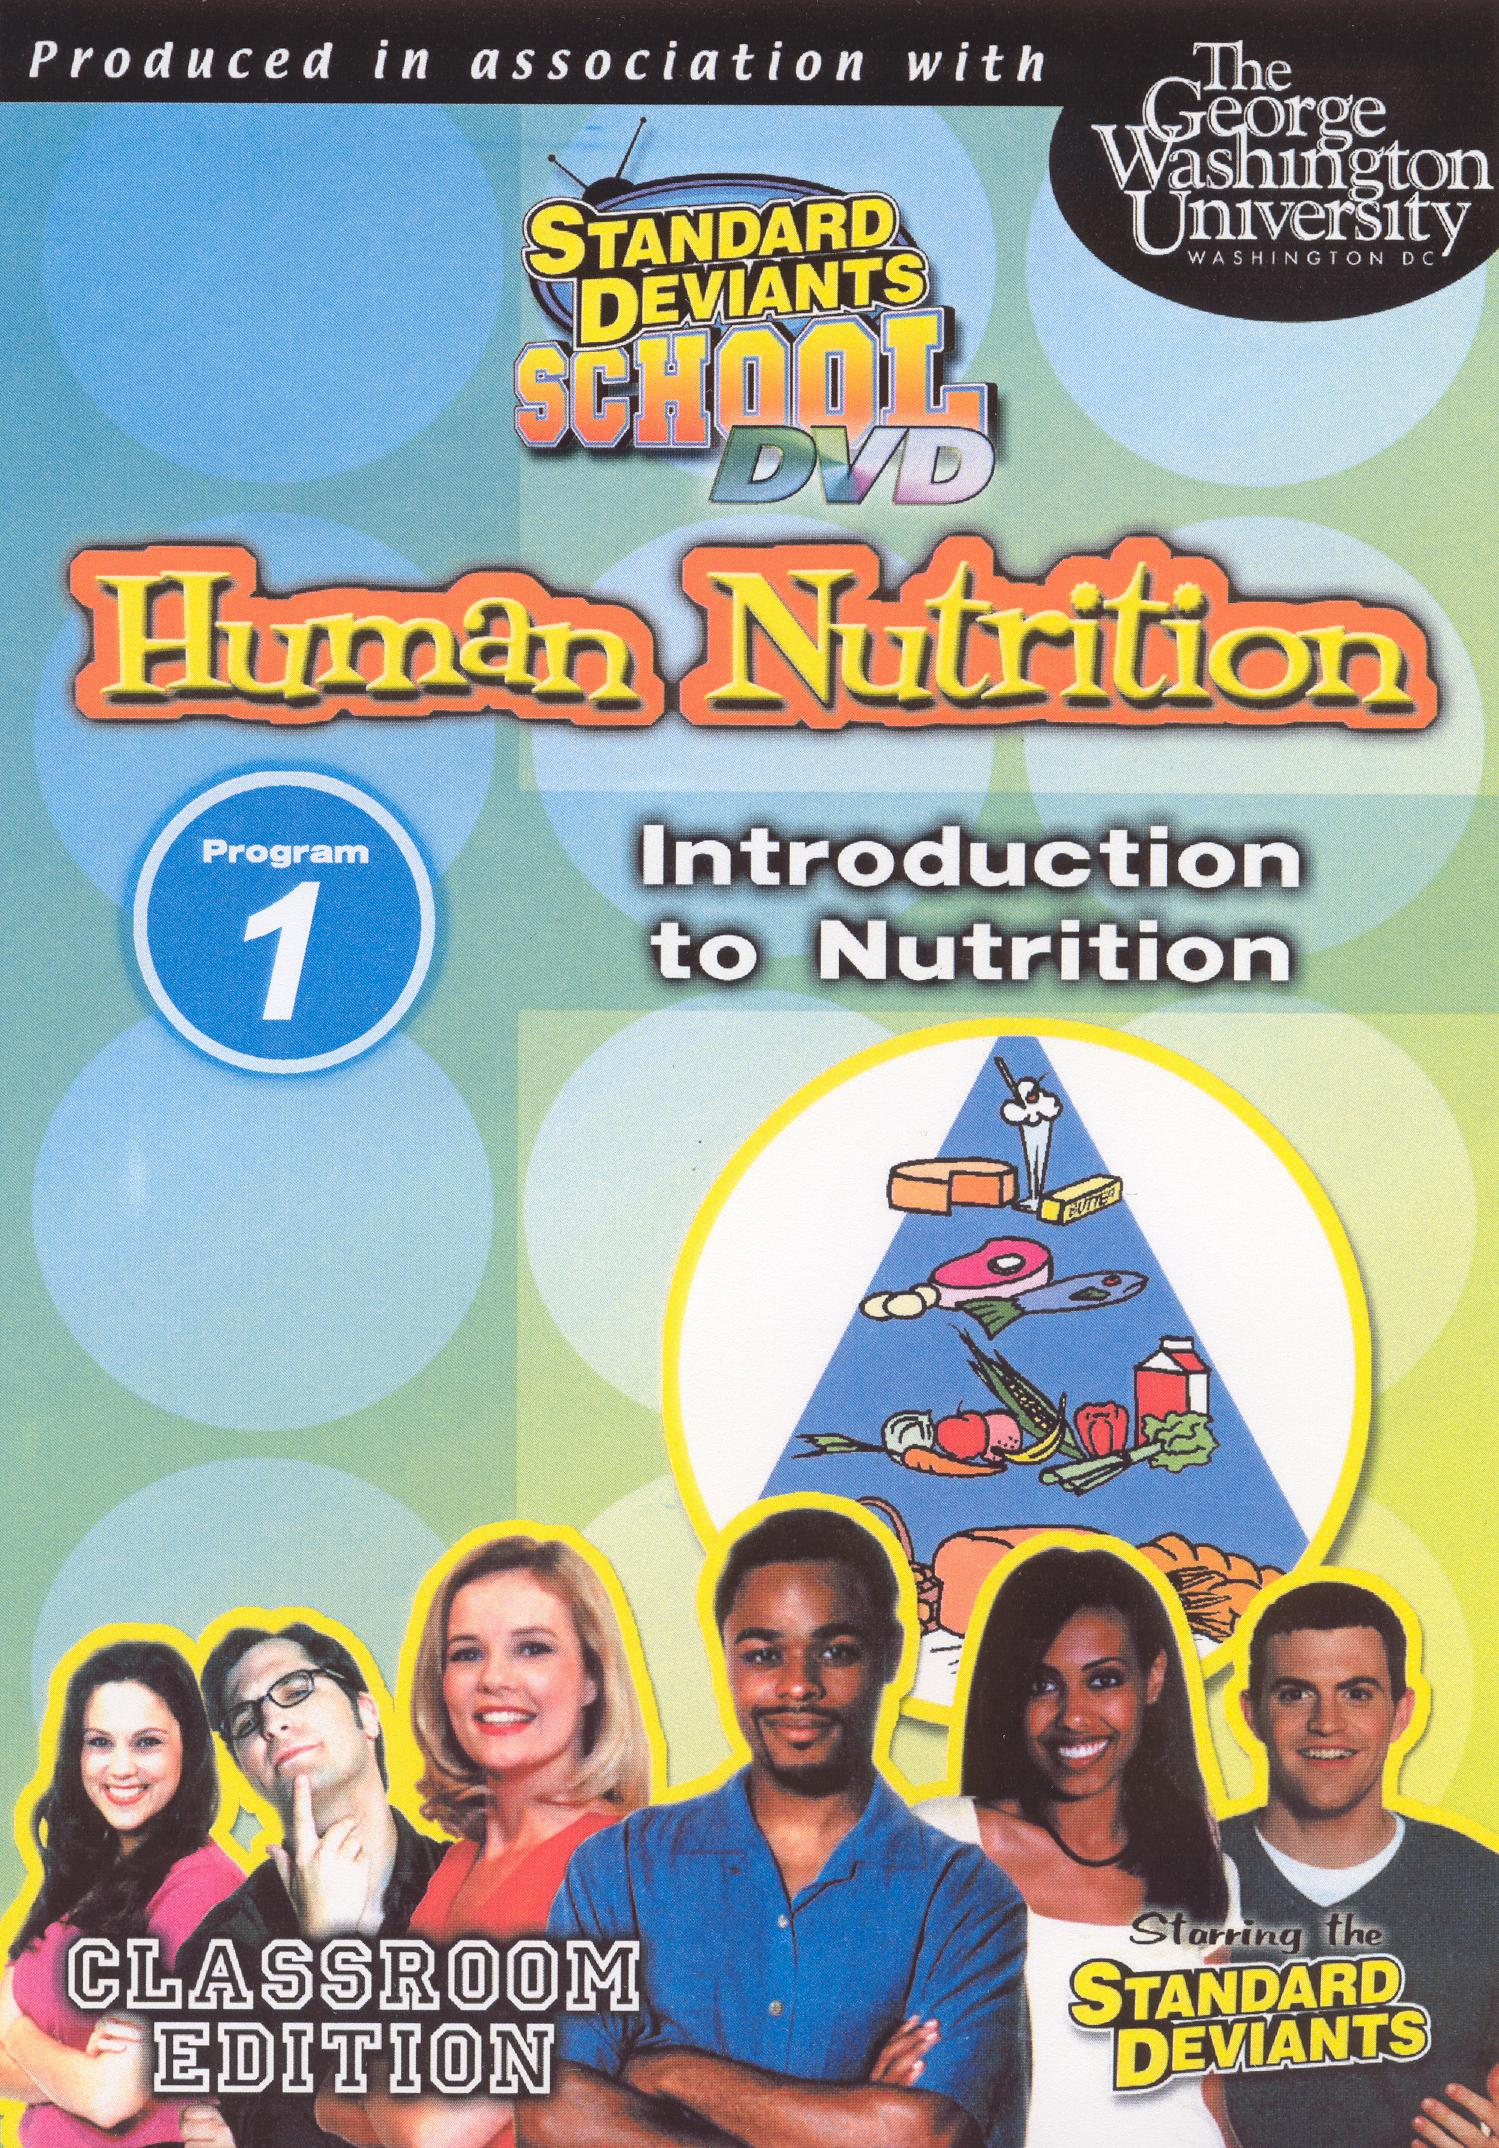 Standard Deviants School: Human Nutrition, Module 1 - Introduction to Nutrition